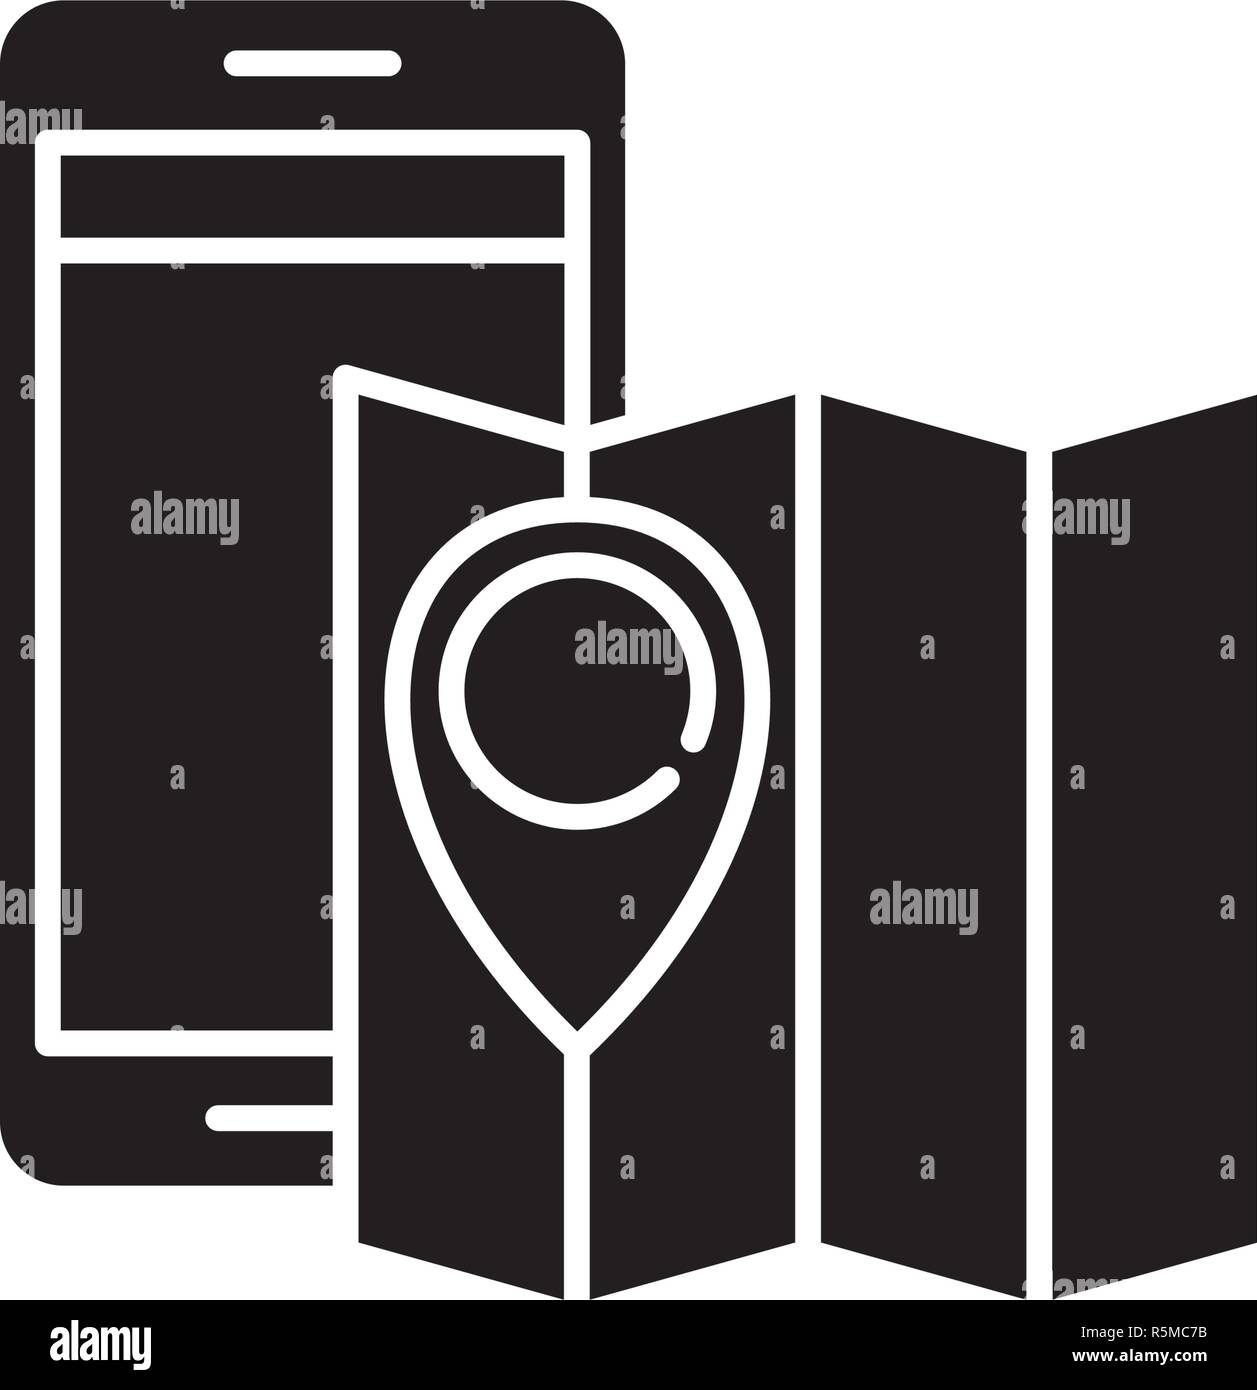 Location black icon, vector sign on isolated background. Location concept symbol, illustration  - Stock Vector